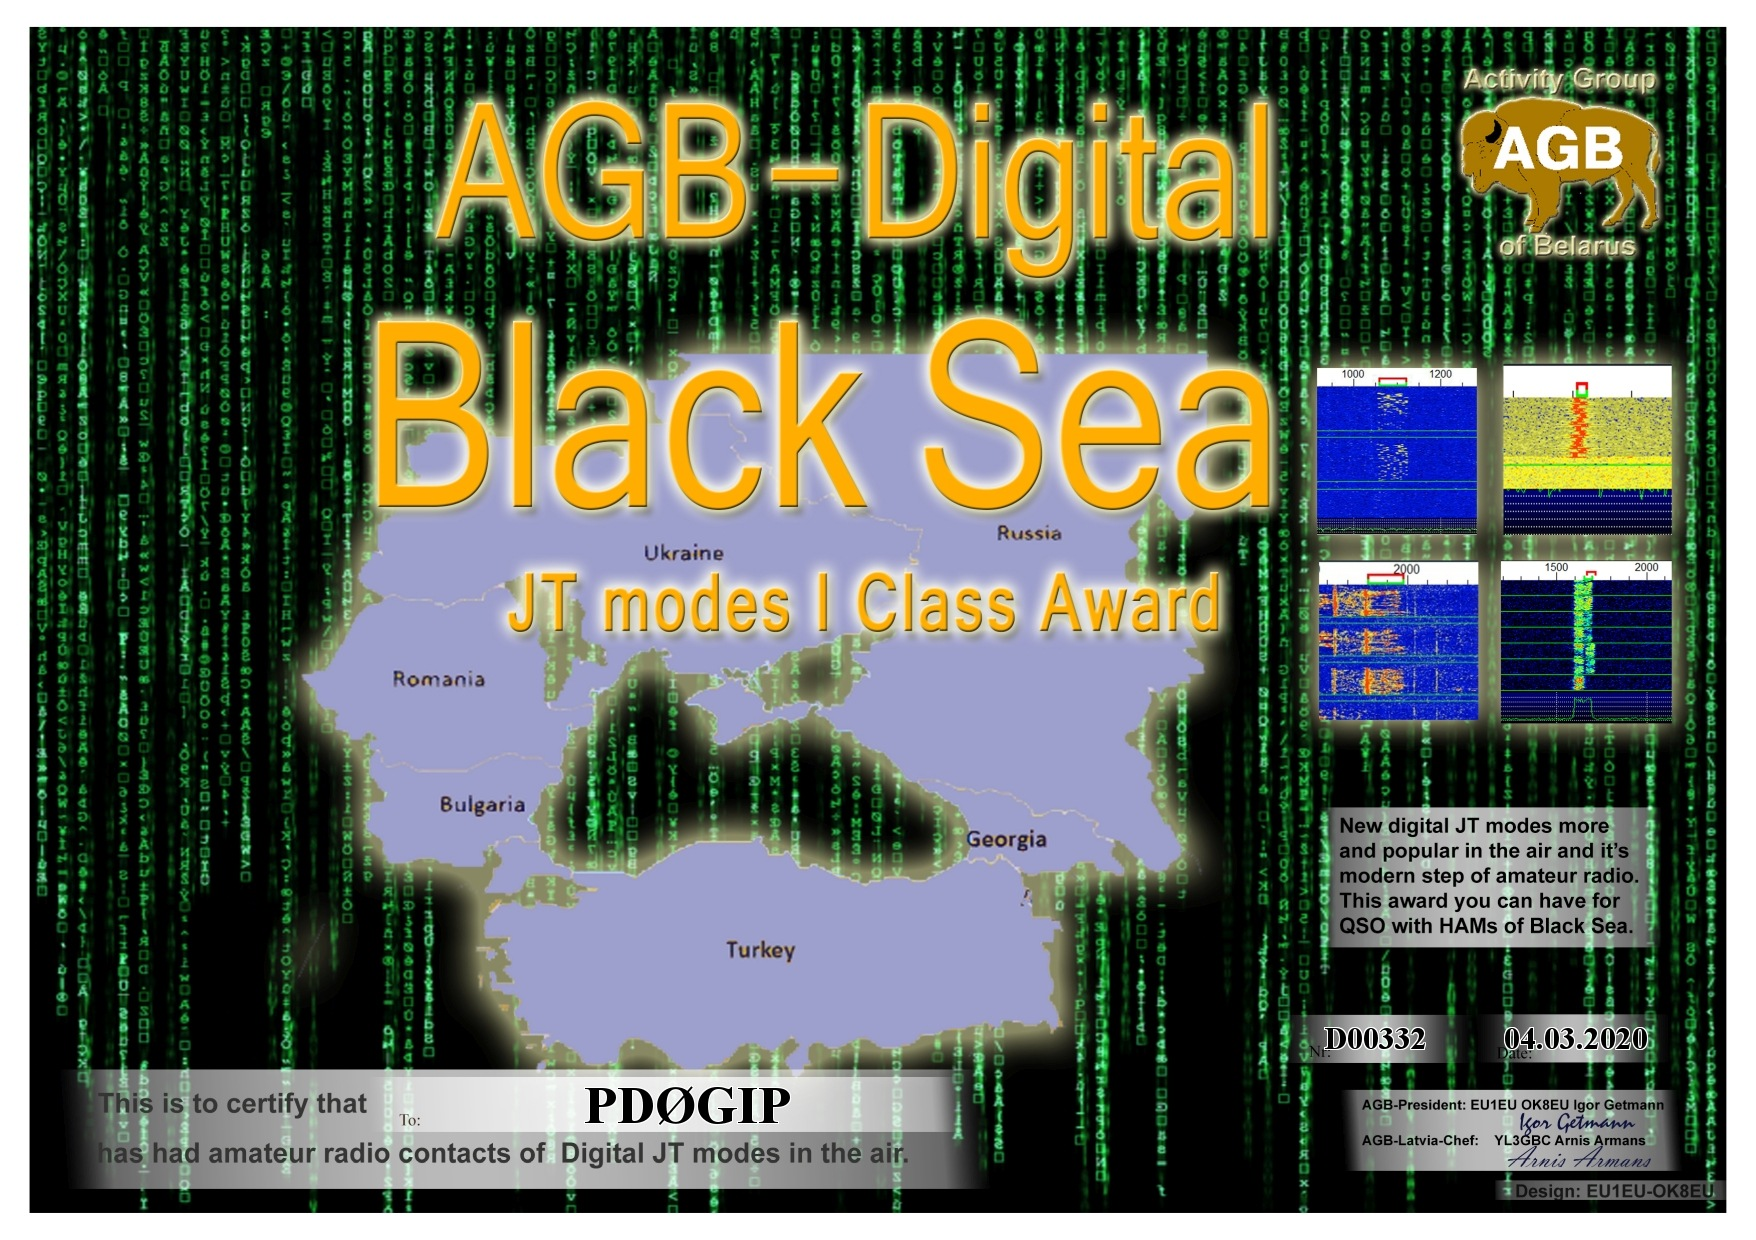 PD0GIP BLACKSEA BASIC I AGB